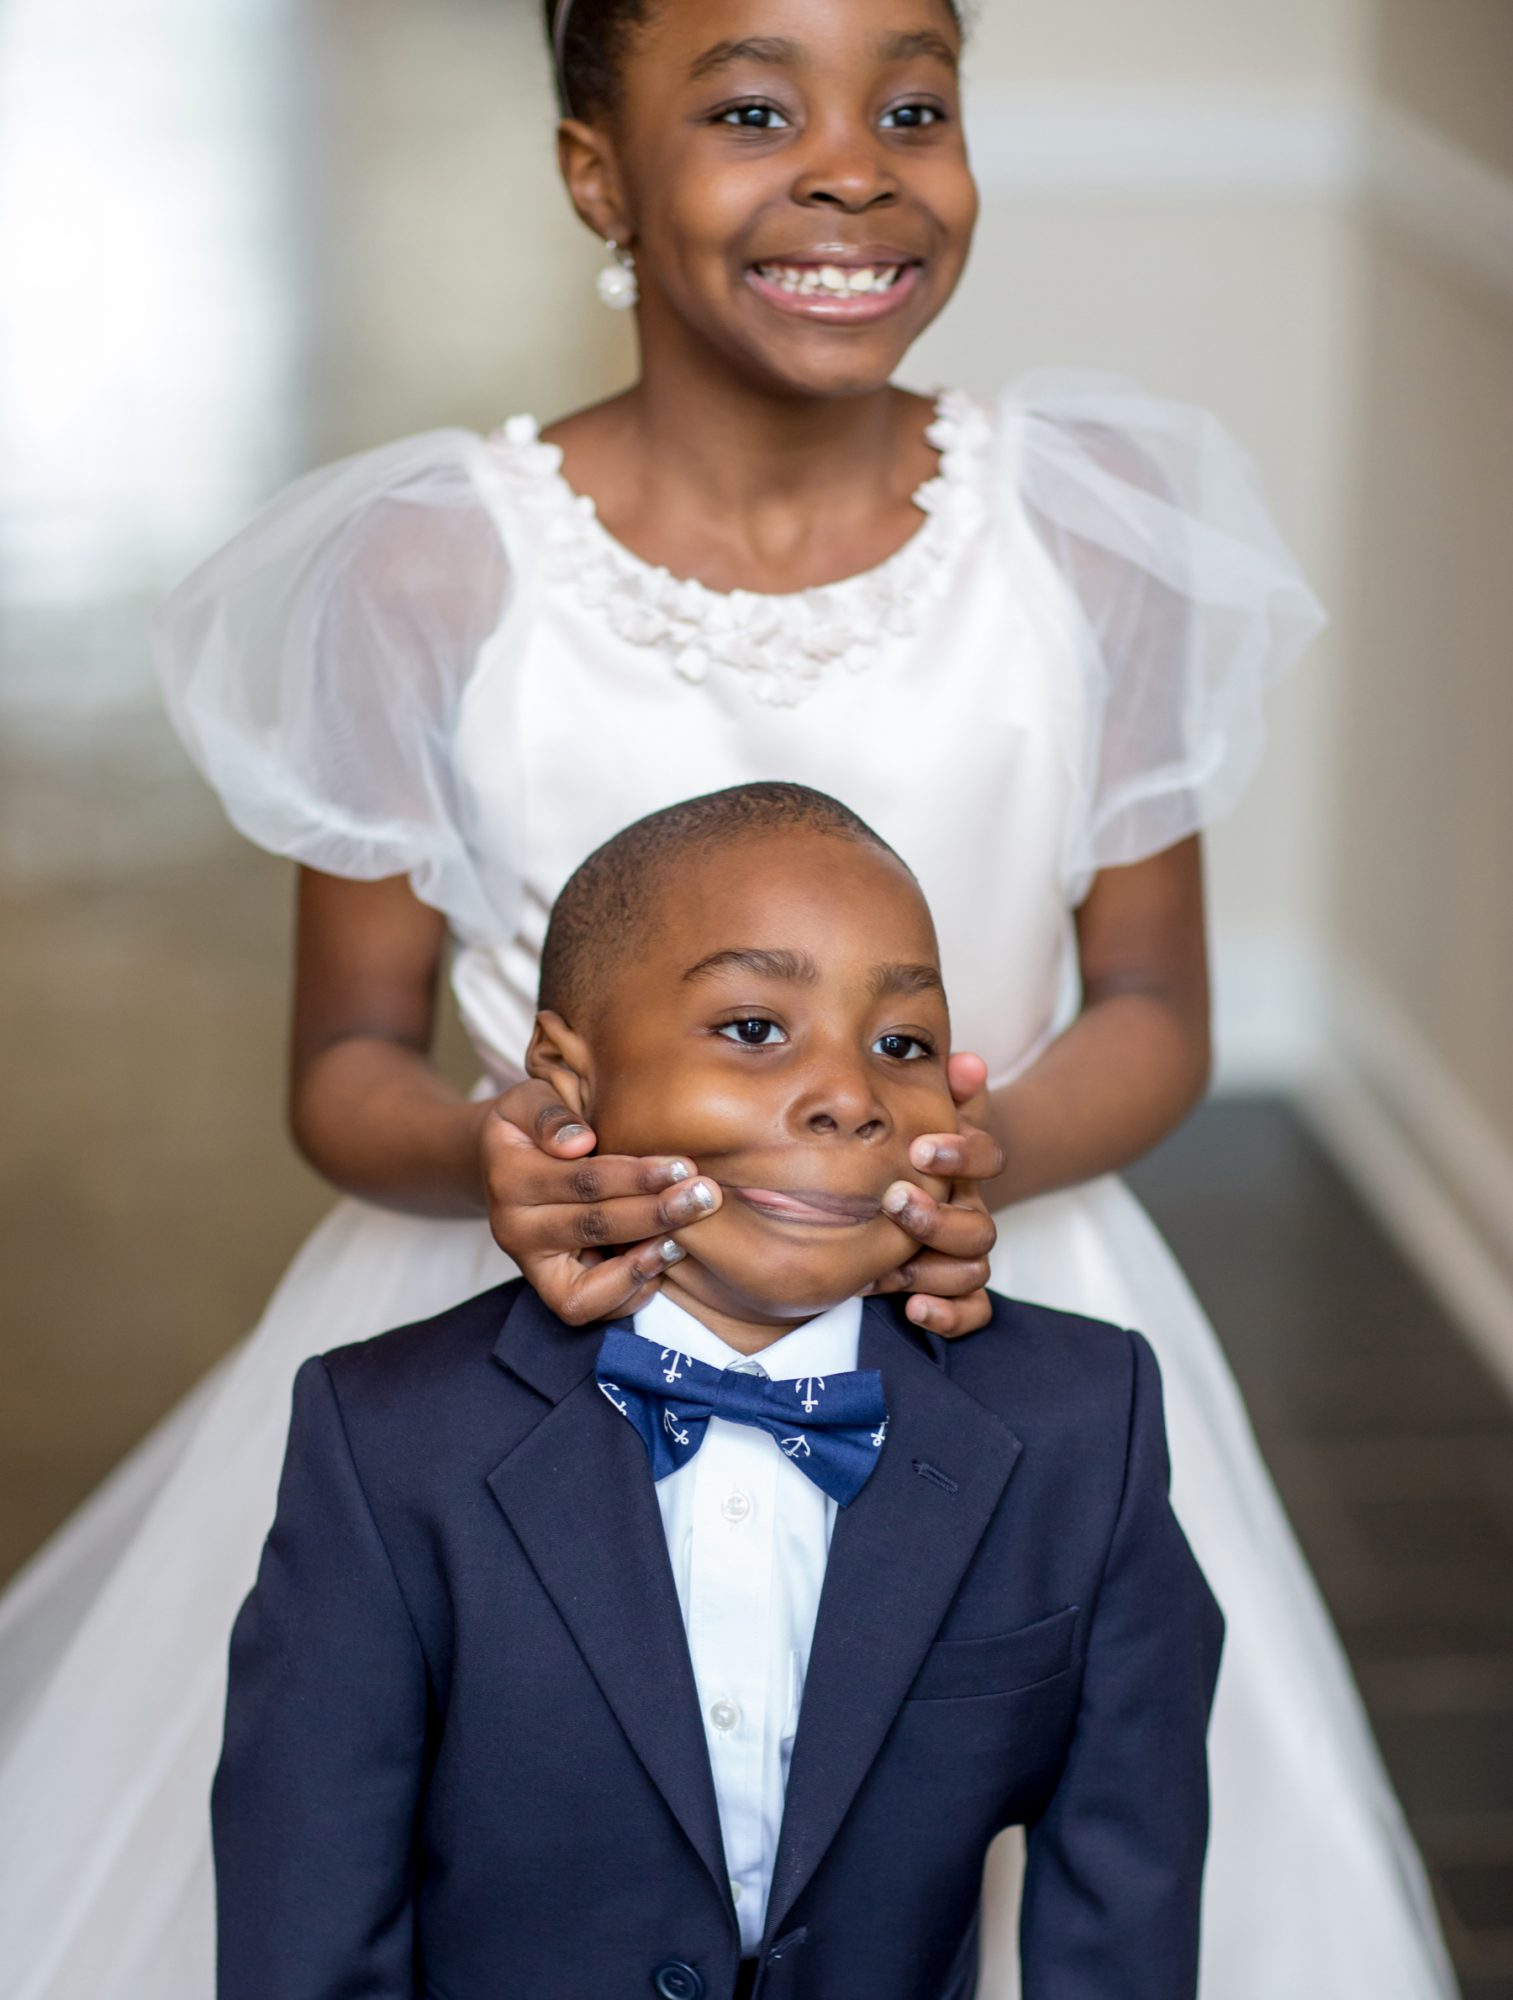 flower girl and ring bearer making funny face